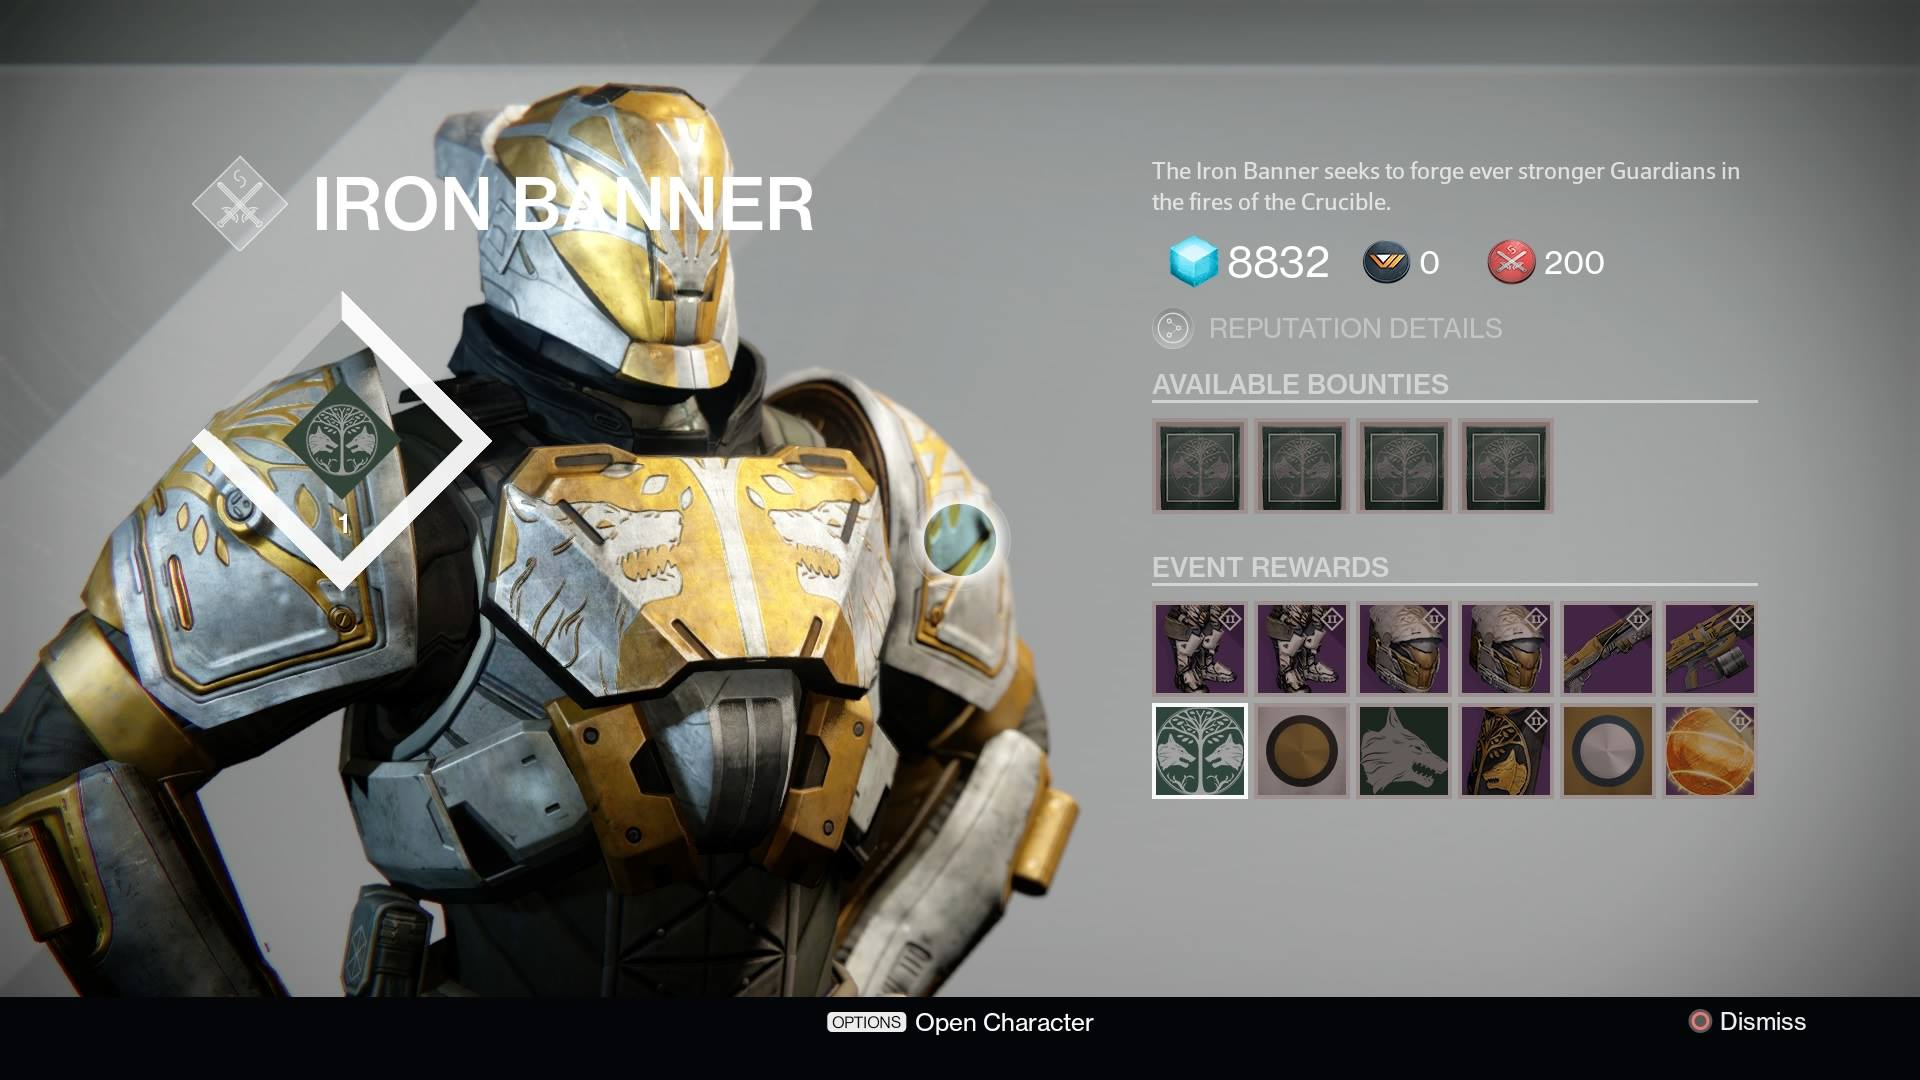 Iron Banner Gear - Some of the Best in Destiny PvP